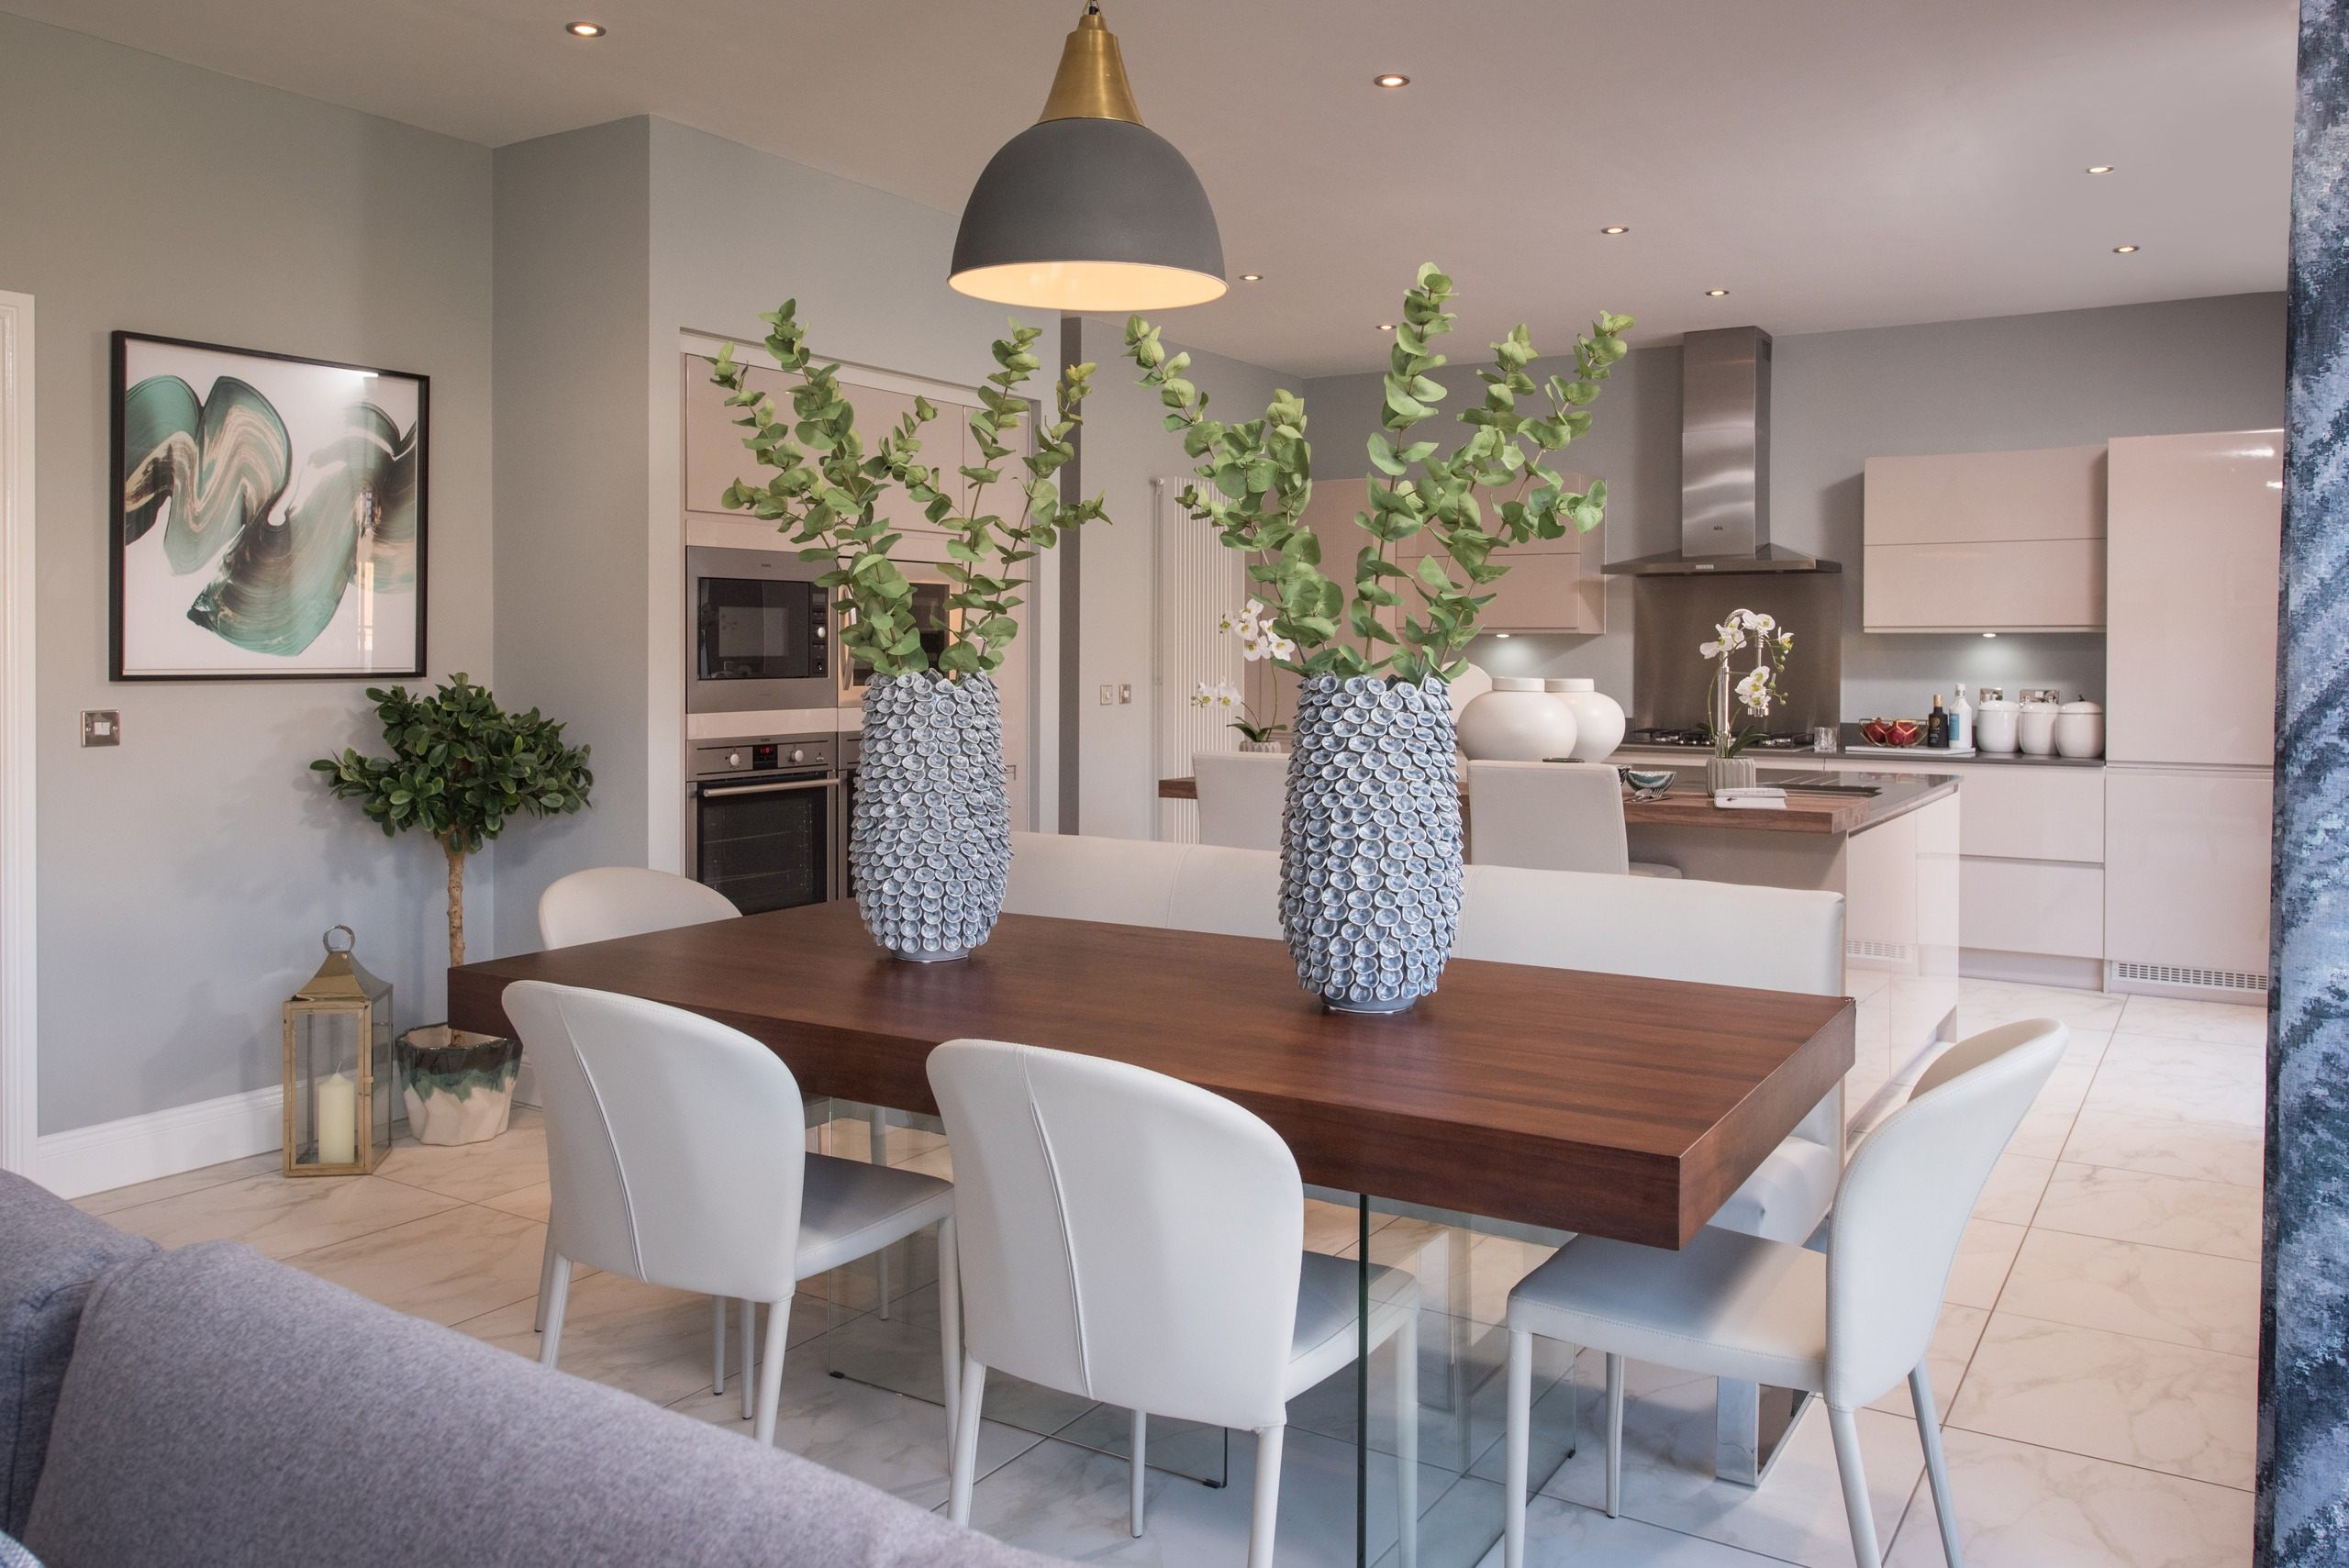 This kitchen/dining/living open plan area by Interhouse Design shows how you can combine different zones to create a connected and cohesive look.